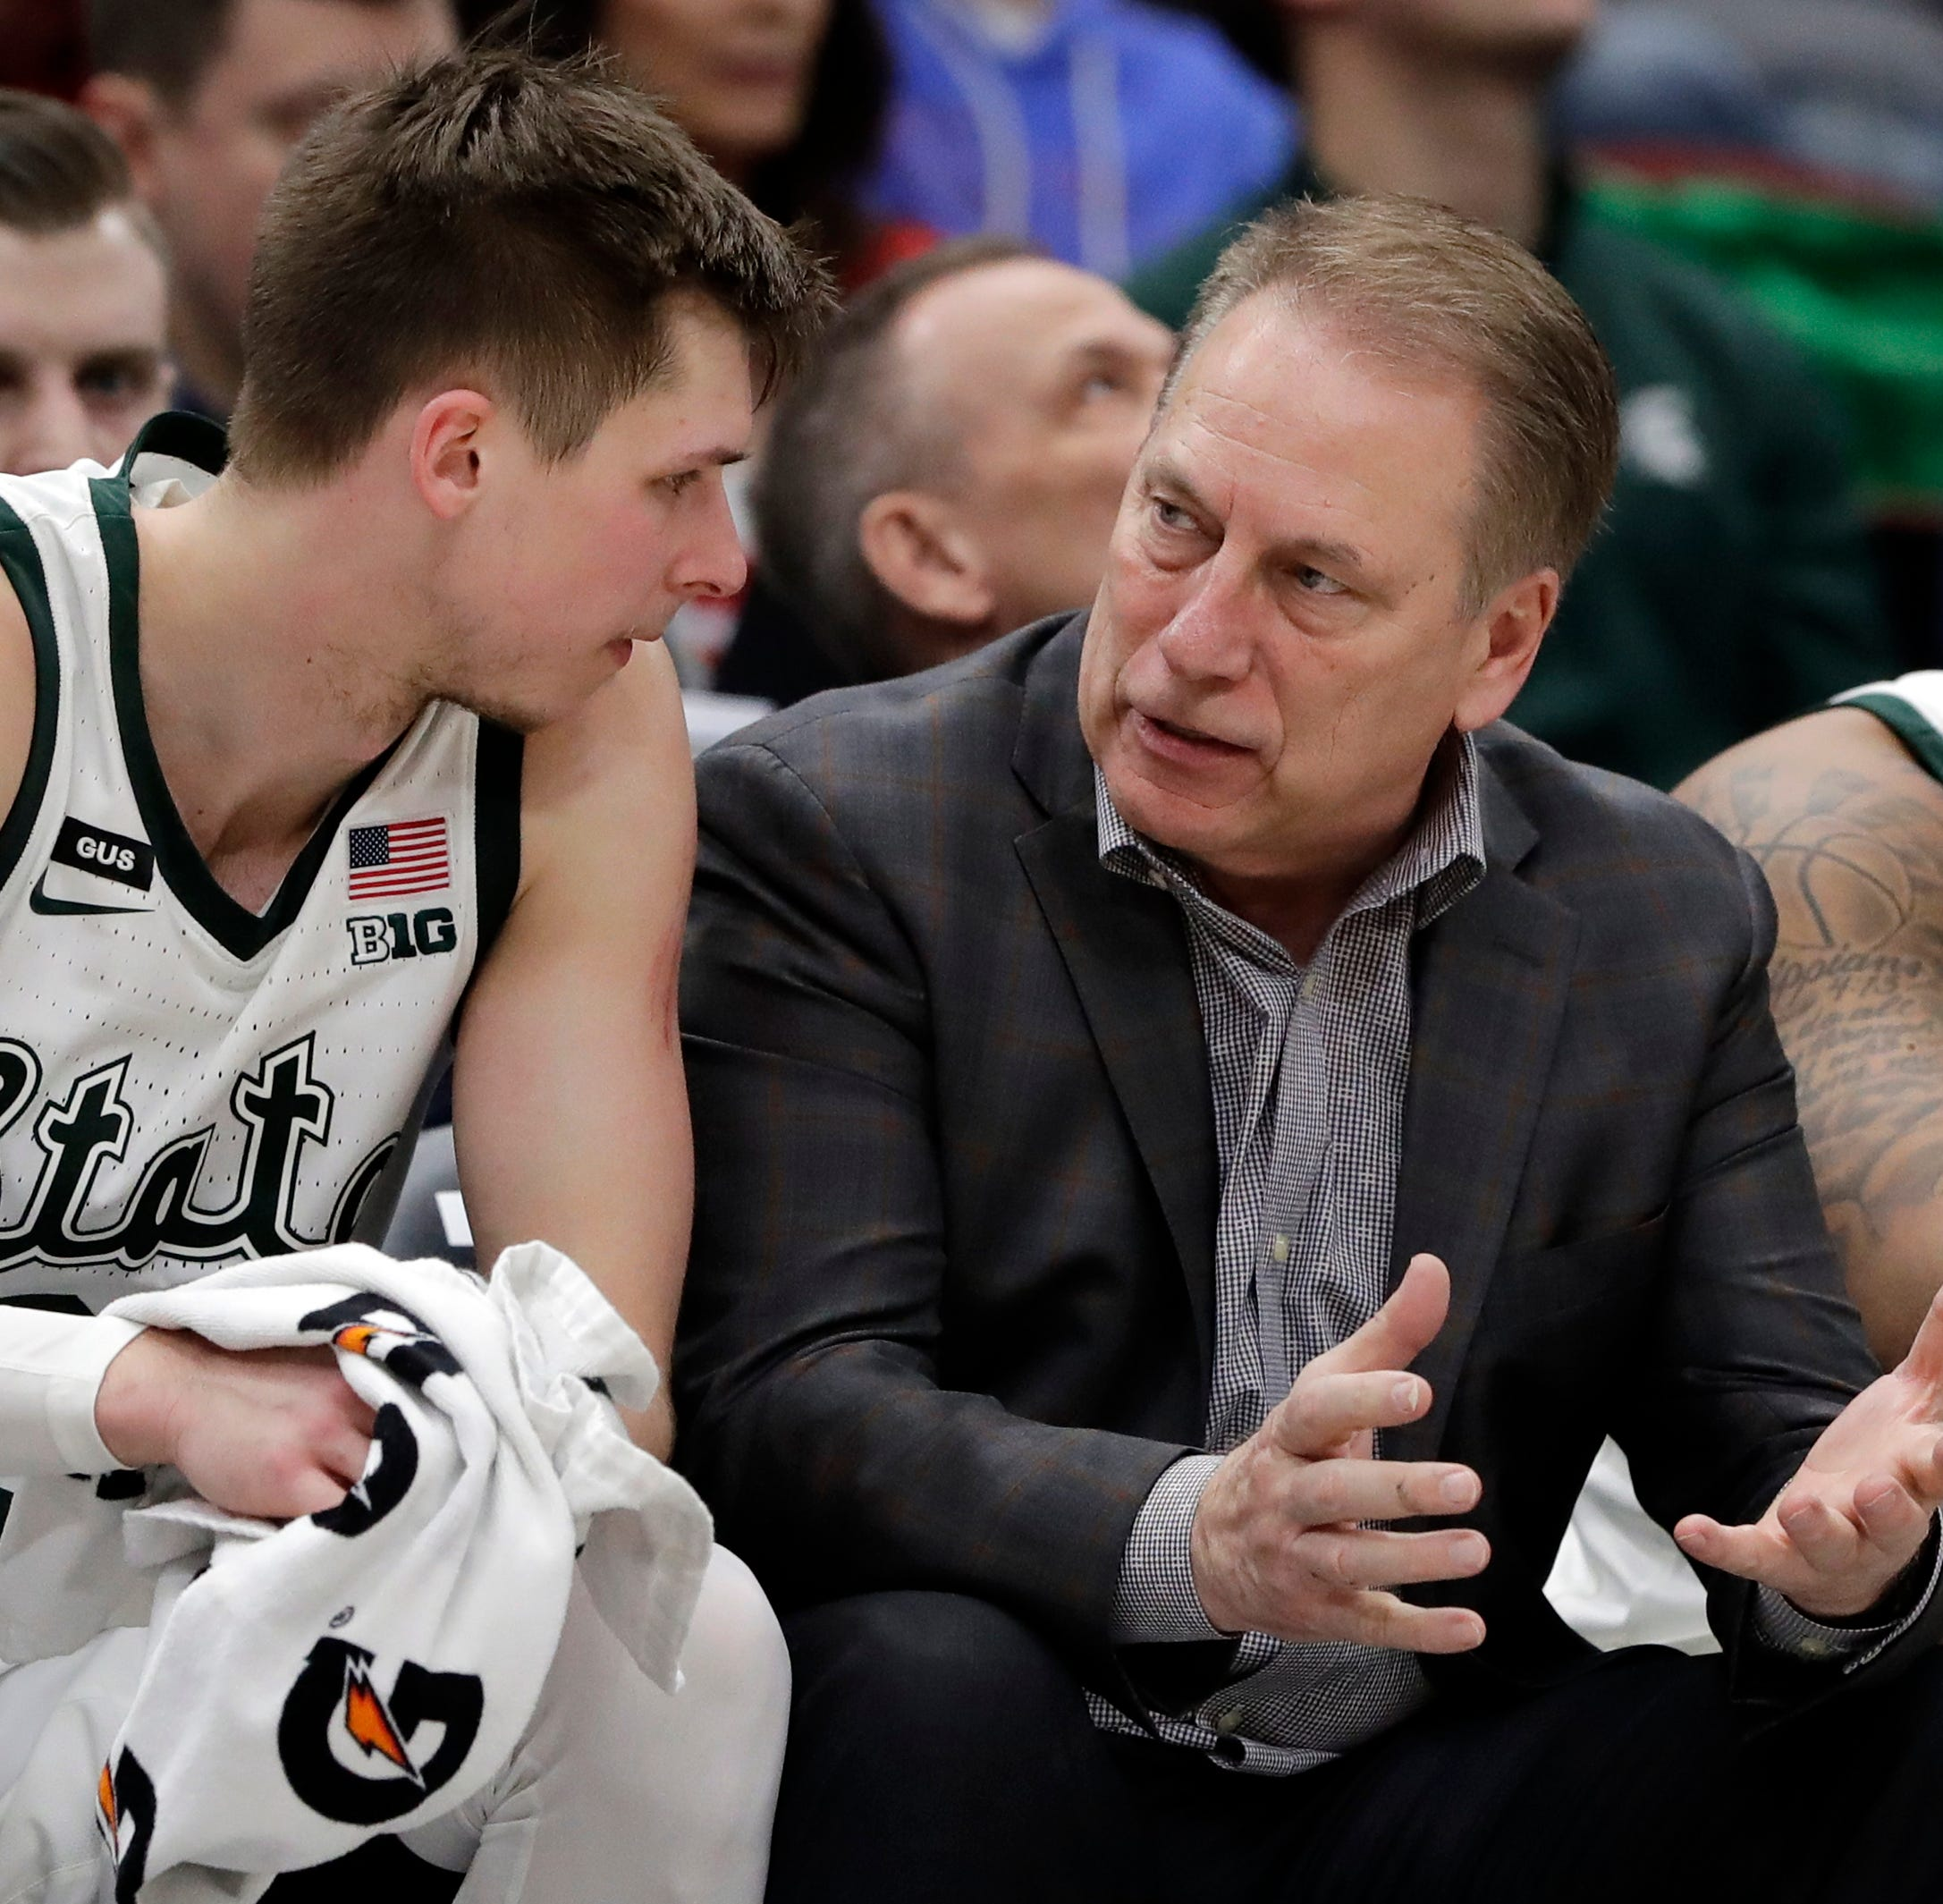 Tom Izzo couldn't buy Iron Mountain dinner. So Steve Mariucci did